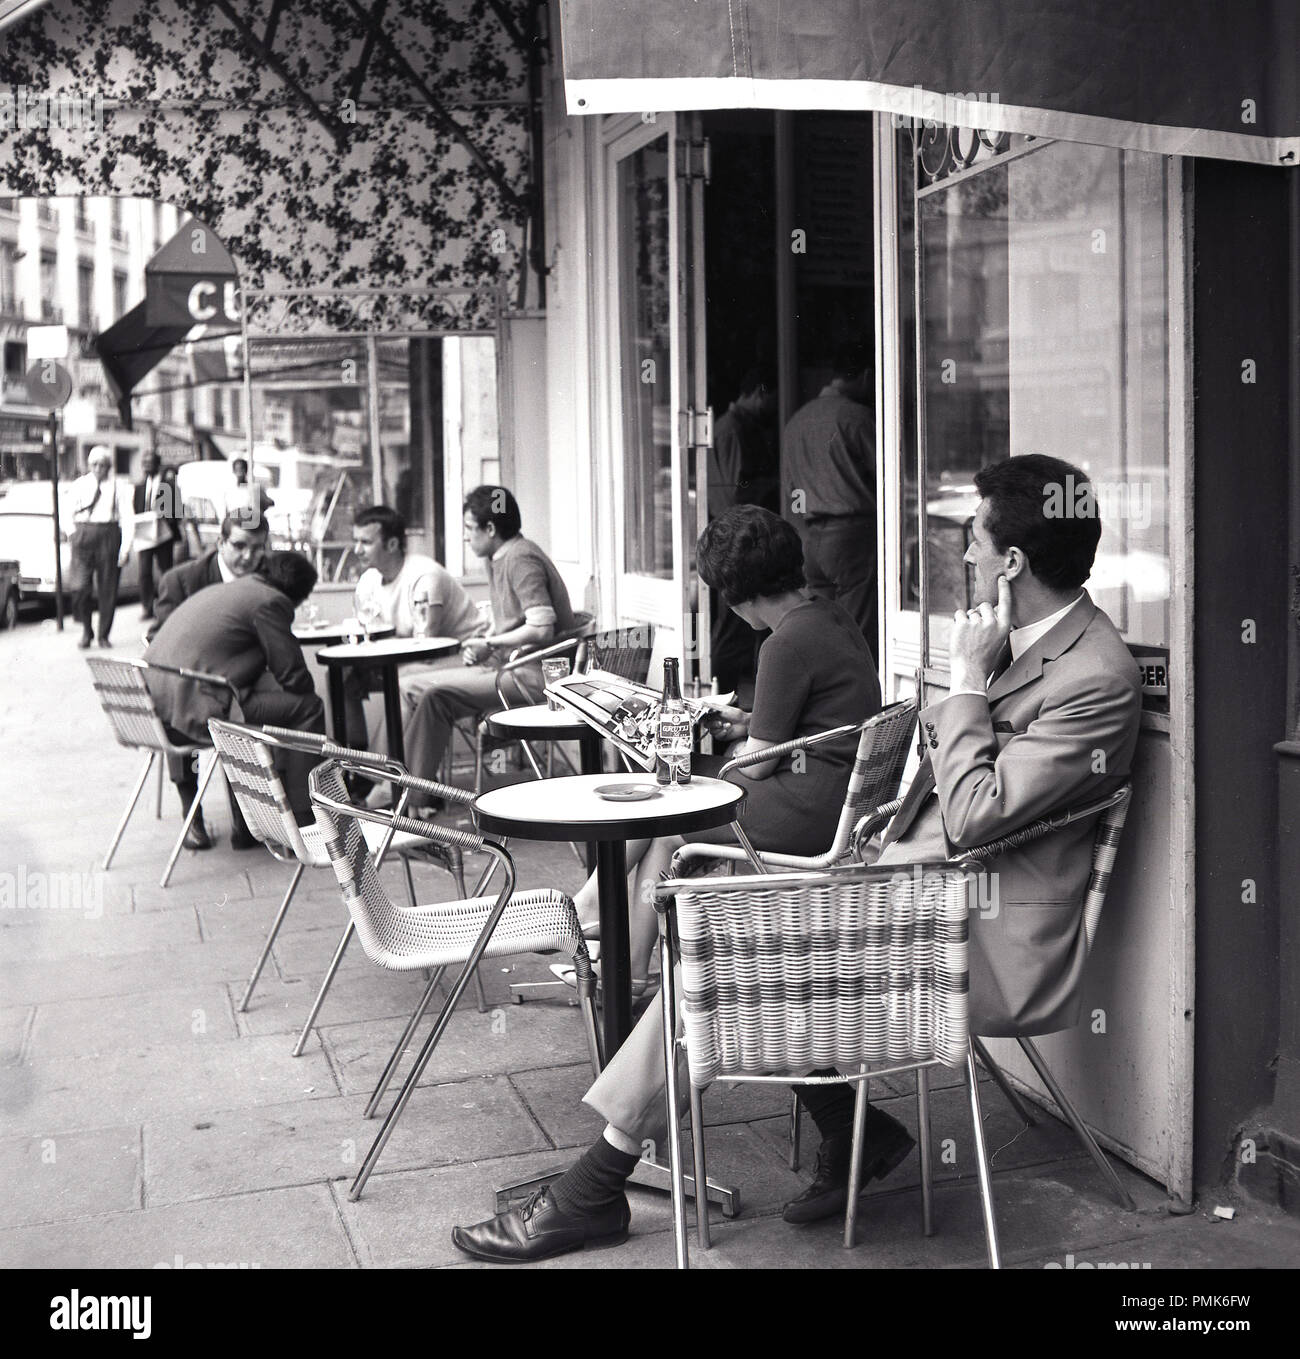 Paris Cafe 1950s High Resolution Stock Photography And Images Alamy